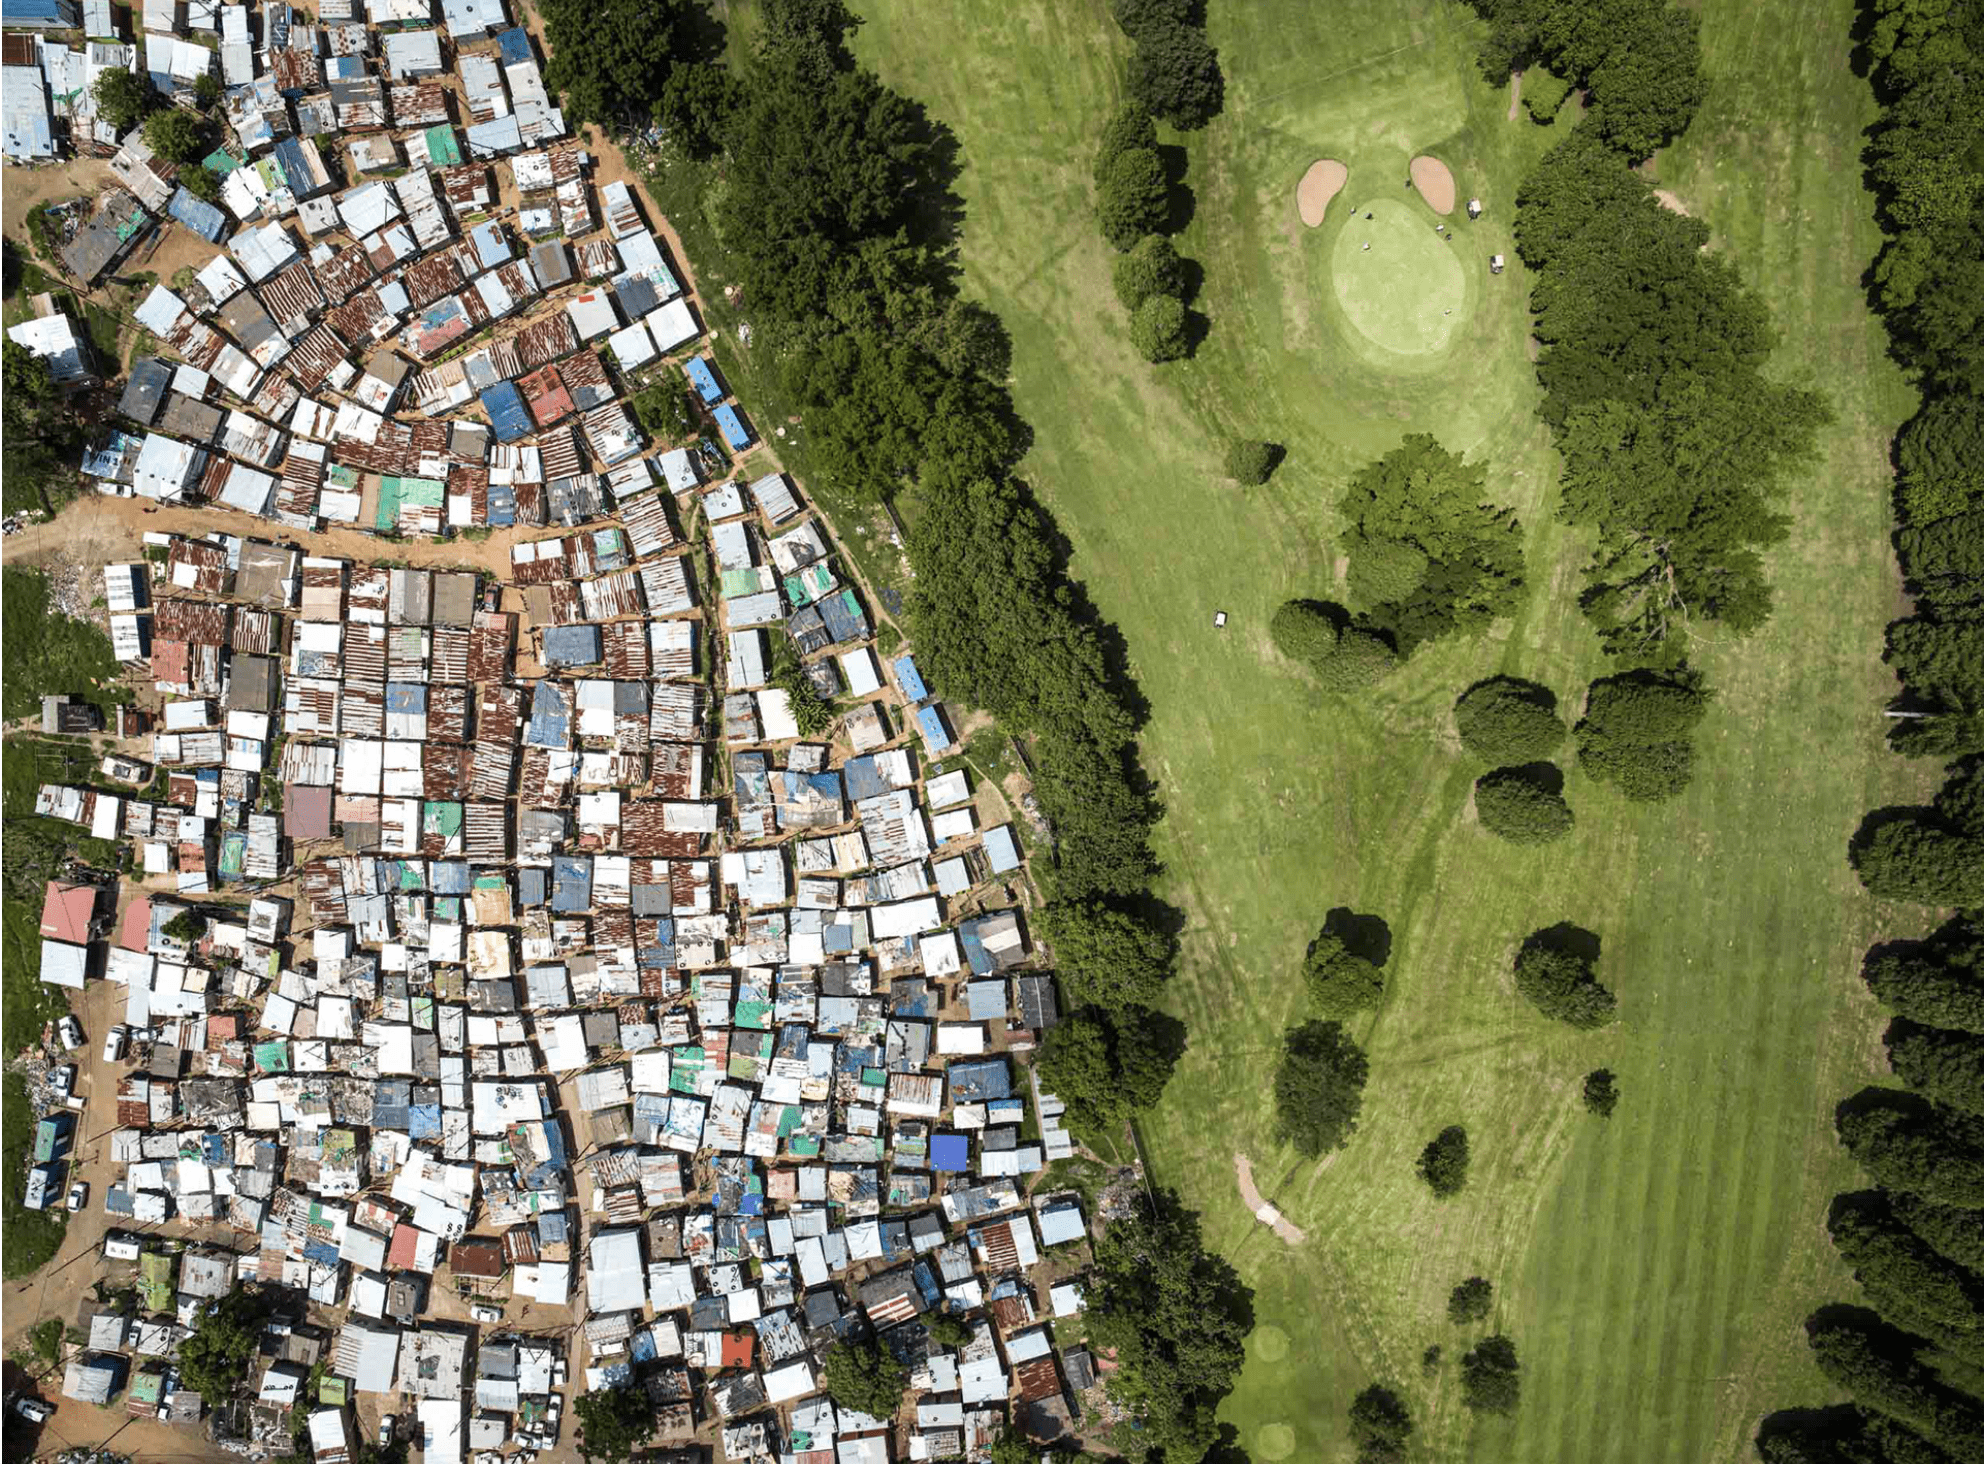 Unequal Scenes by photographer Johnny Miller.